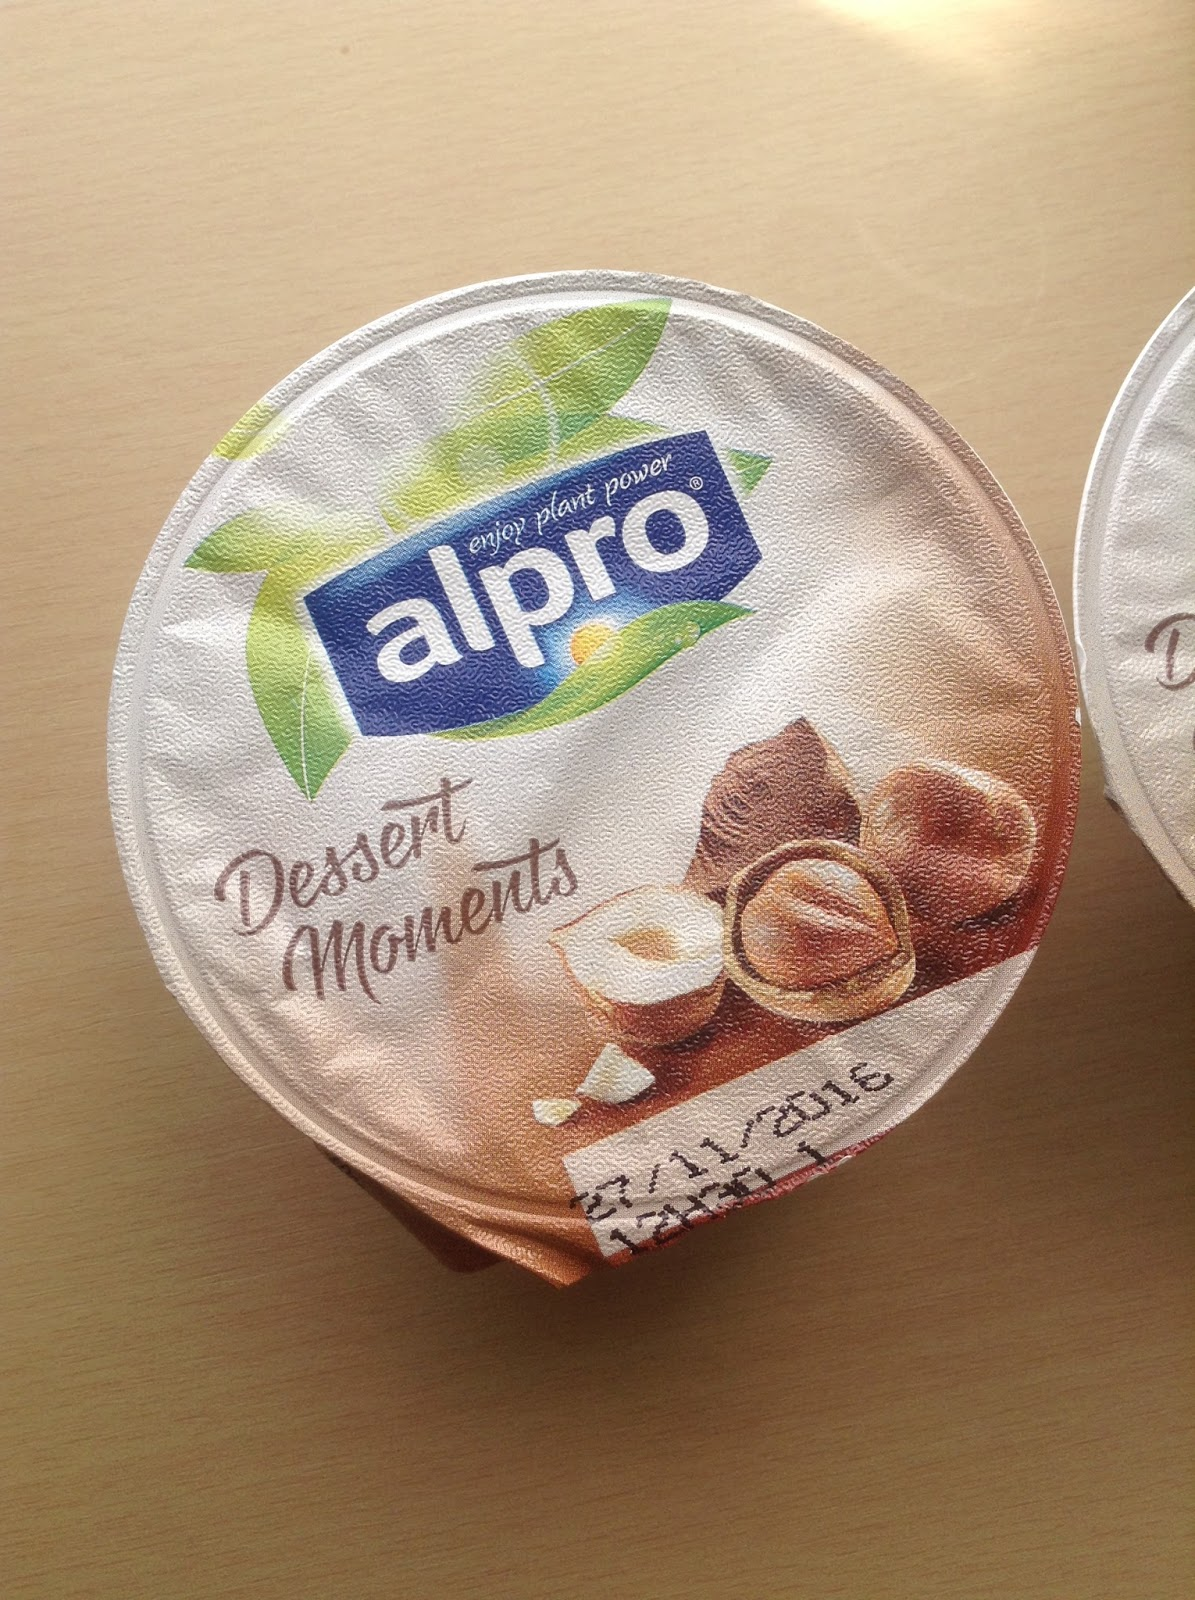 Alpro Dessert Moments Hazelnut Chocolate Uk Review